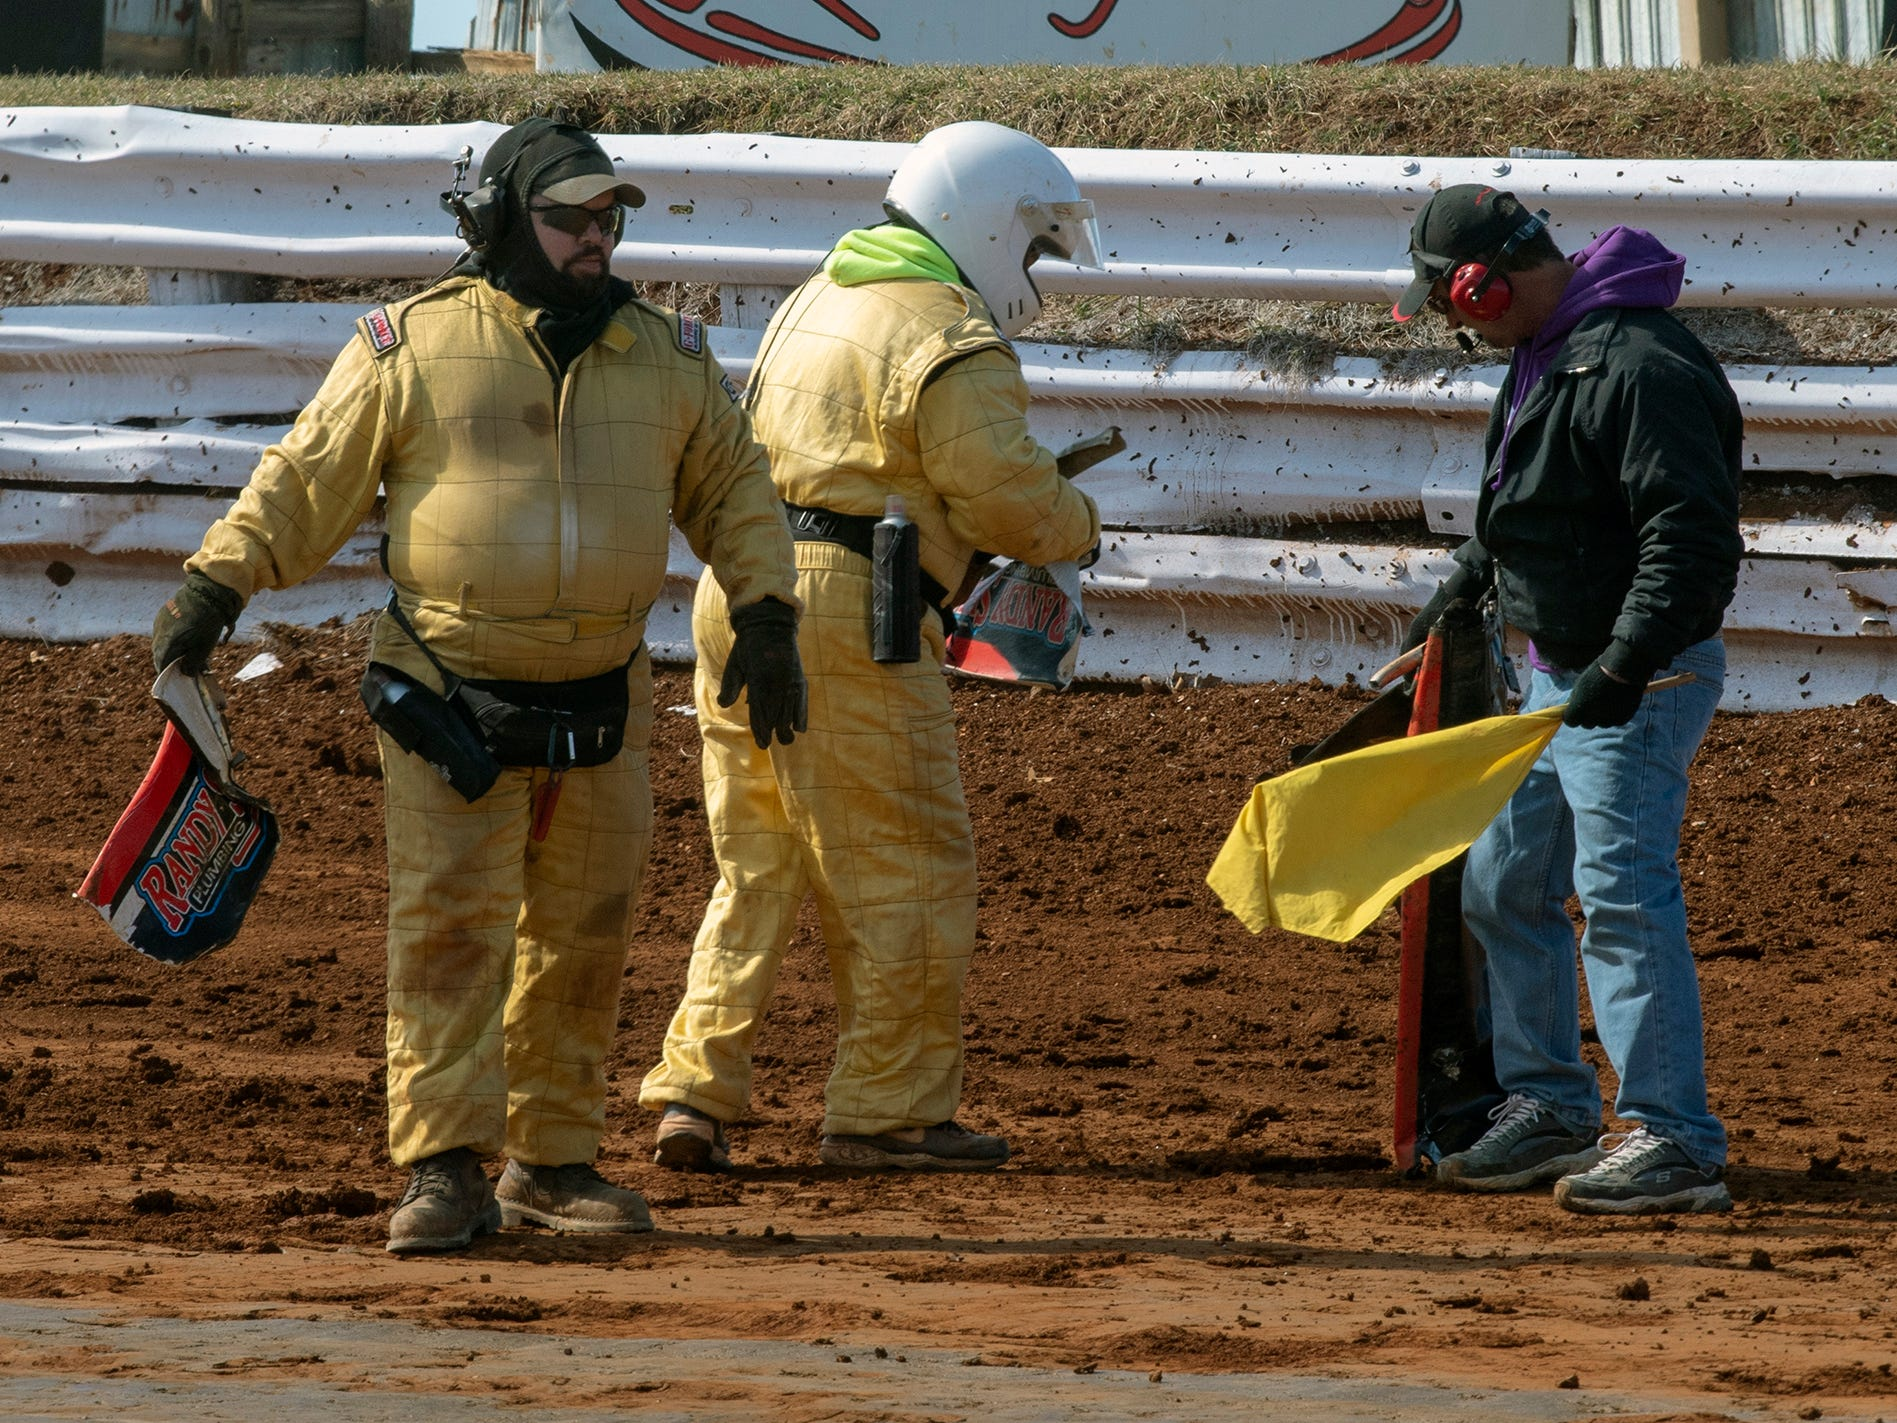 The track crew picks up pieces of a car after the yellow warning flag during the Williams Grove season opener for 410 sprints Sunday March 17, 2019.